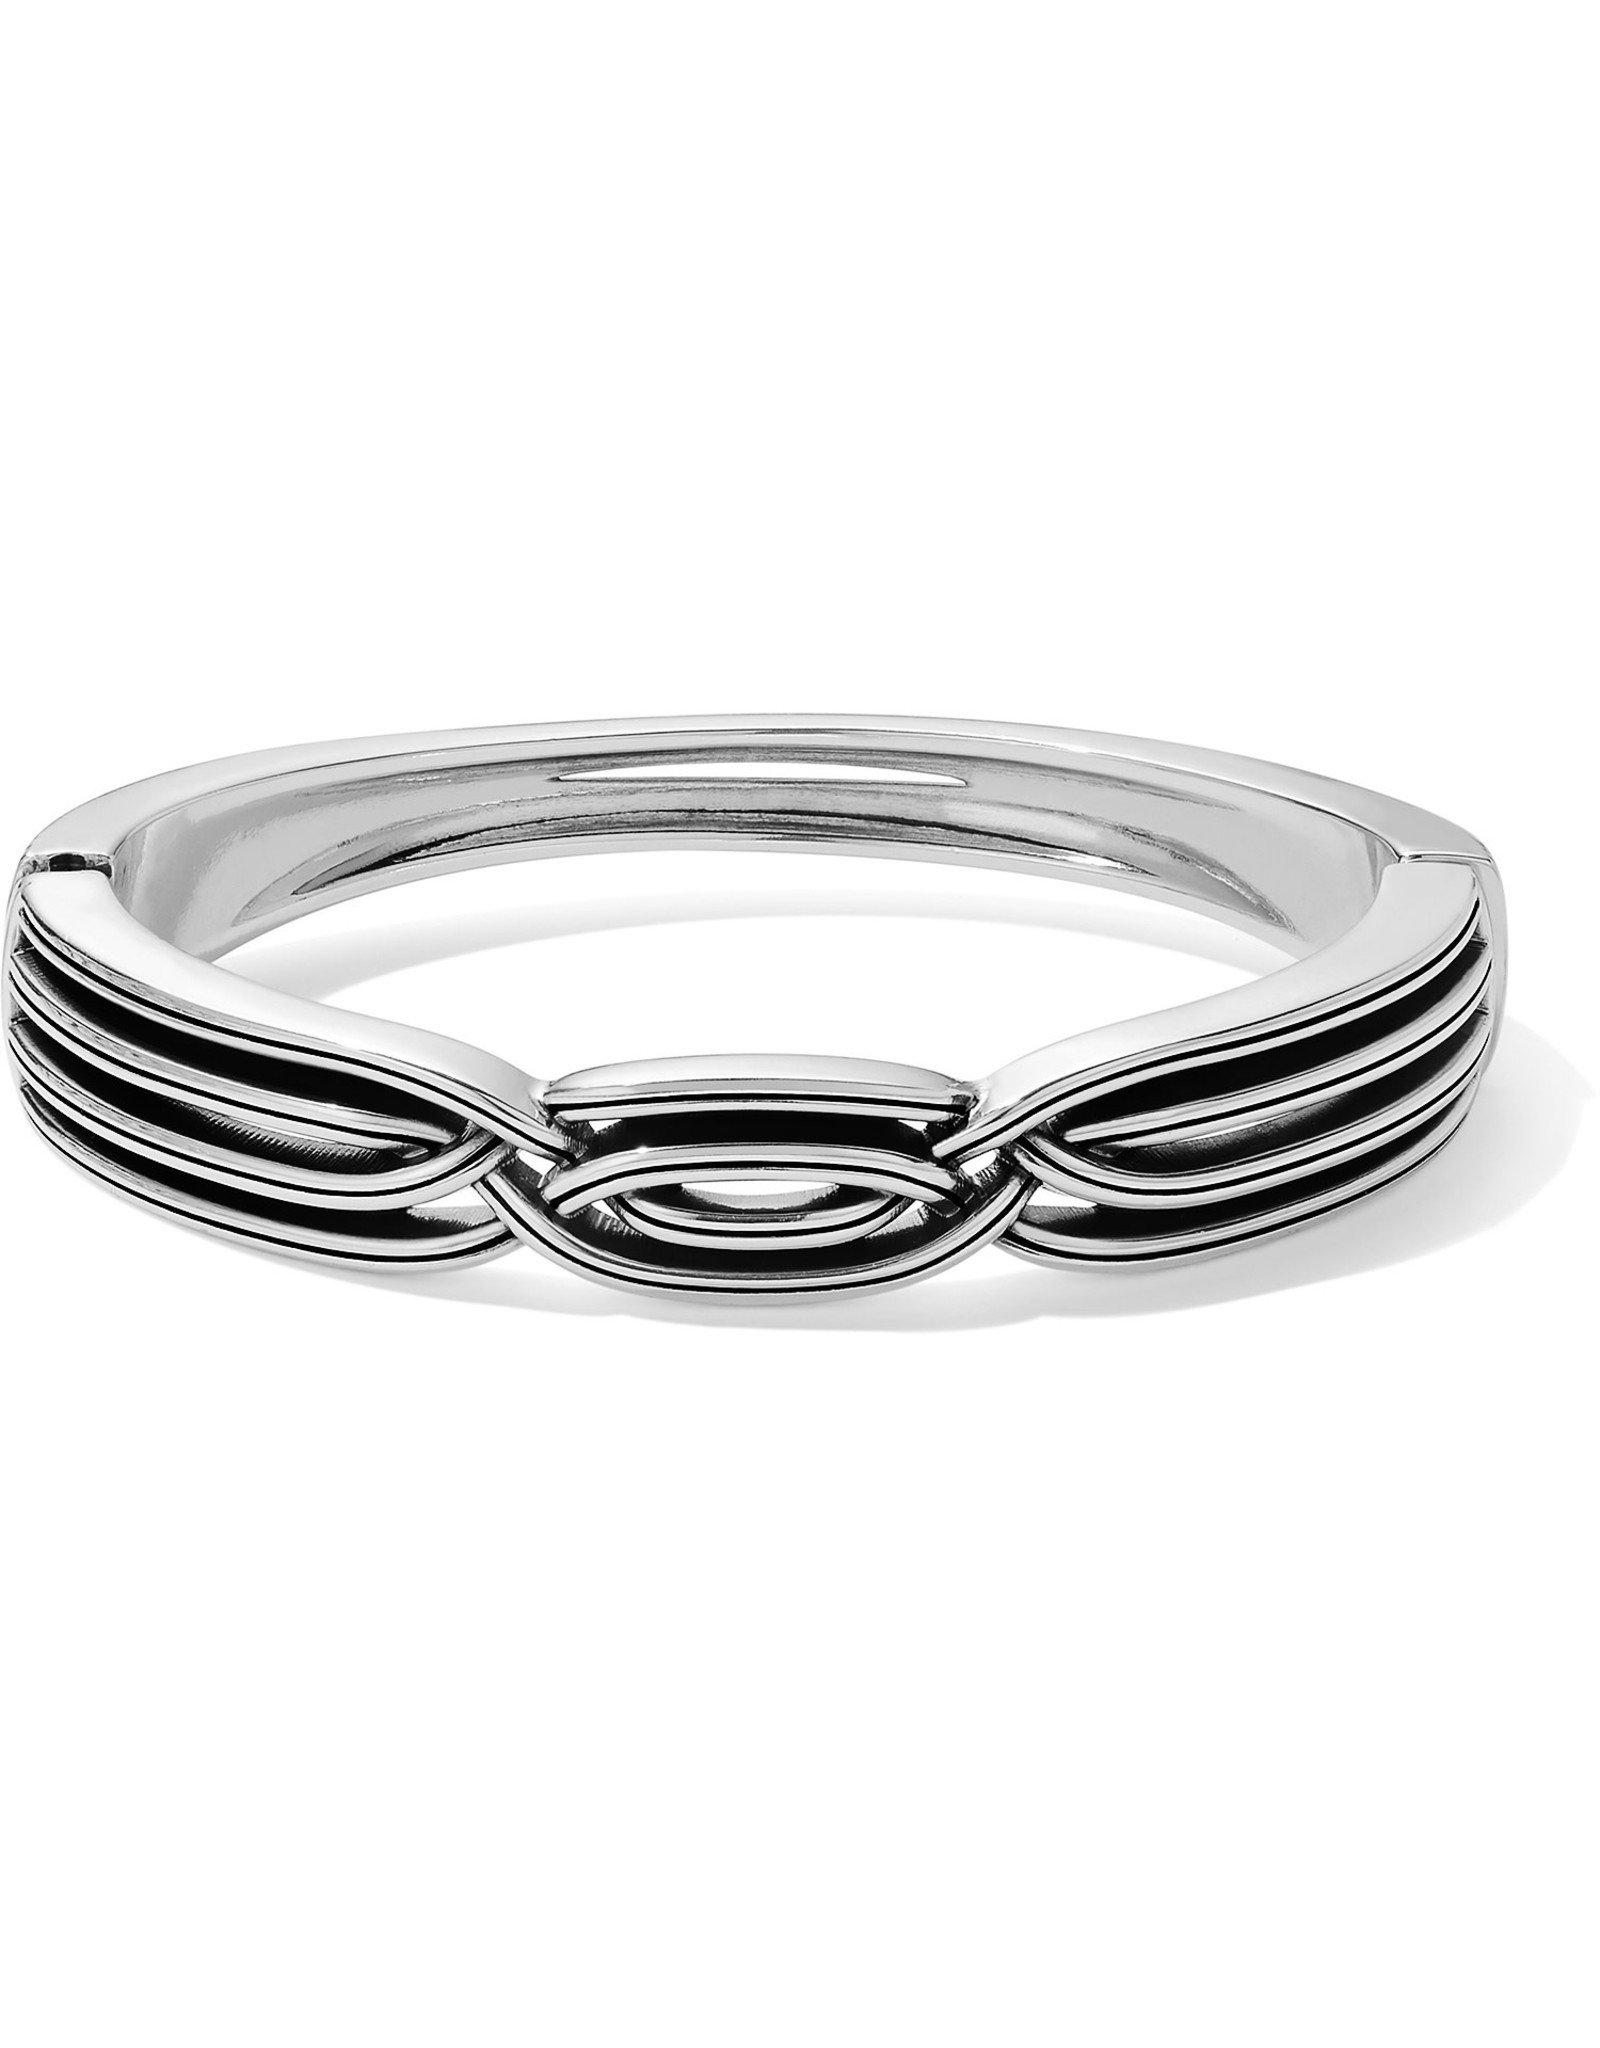 Brighton Intertwine Hinged Bangle